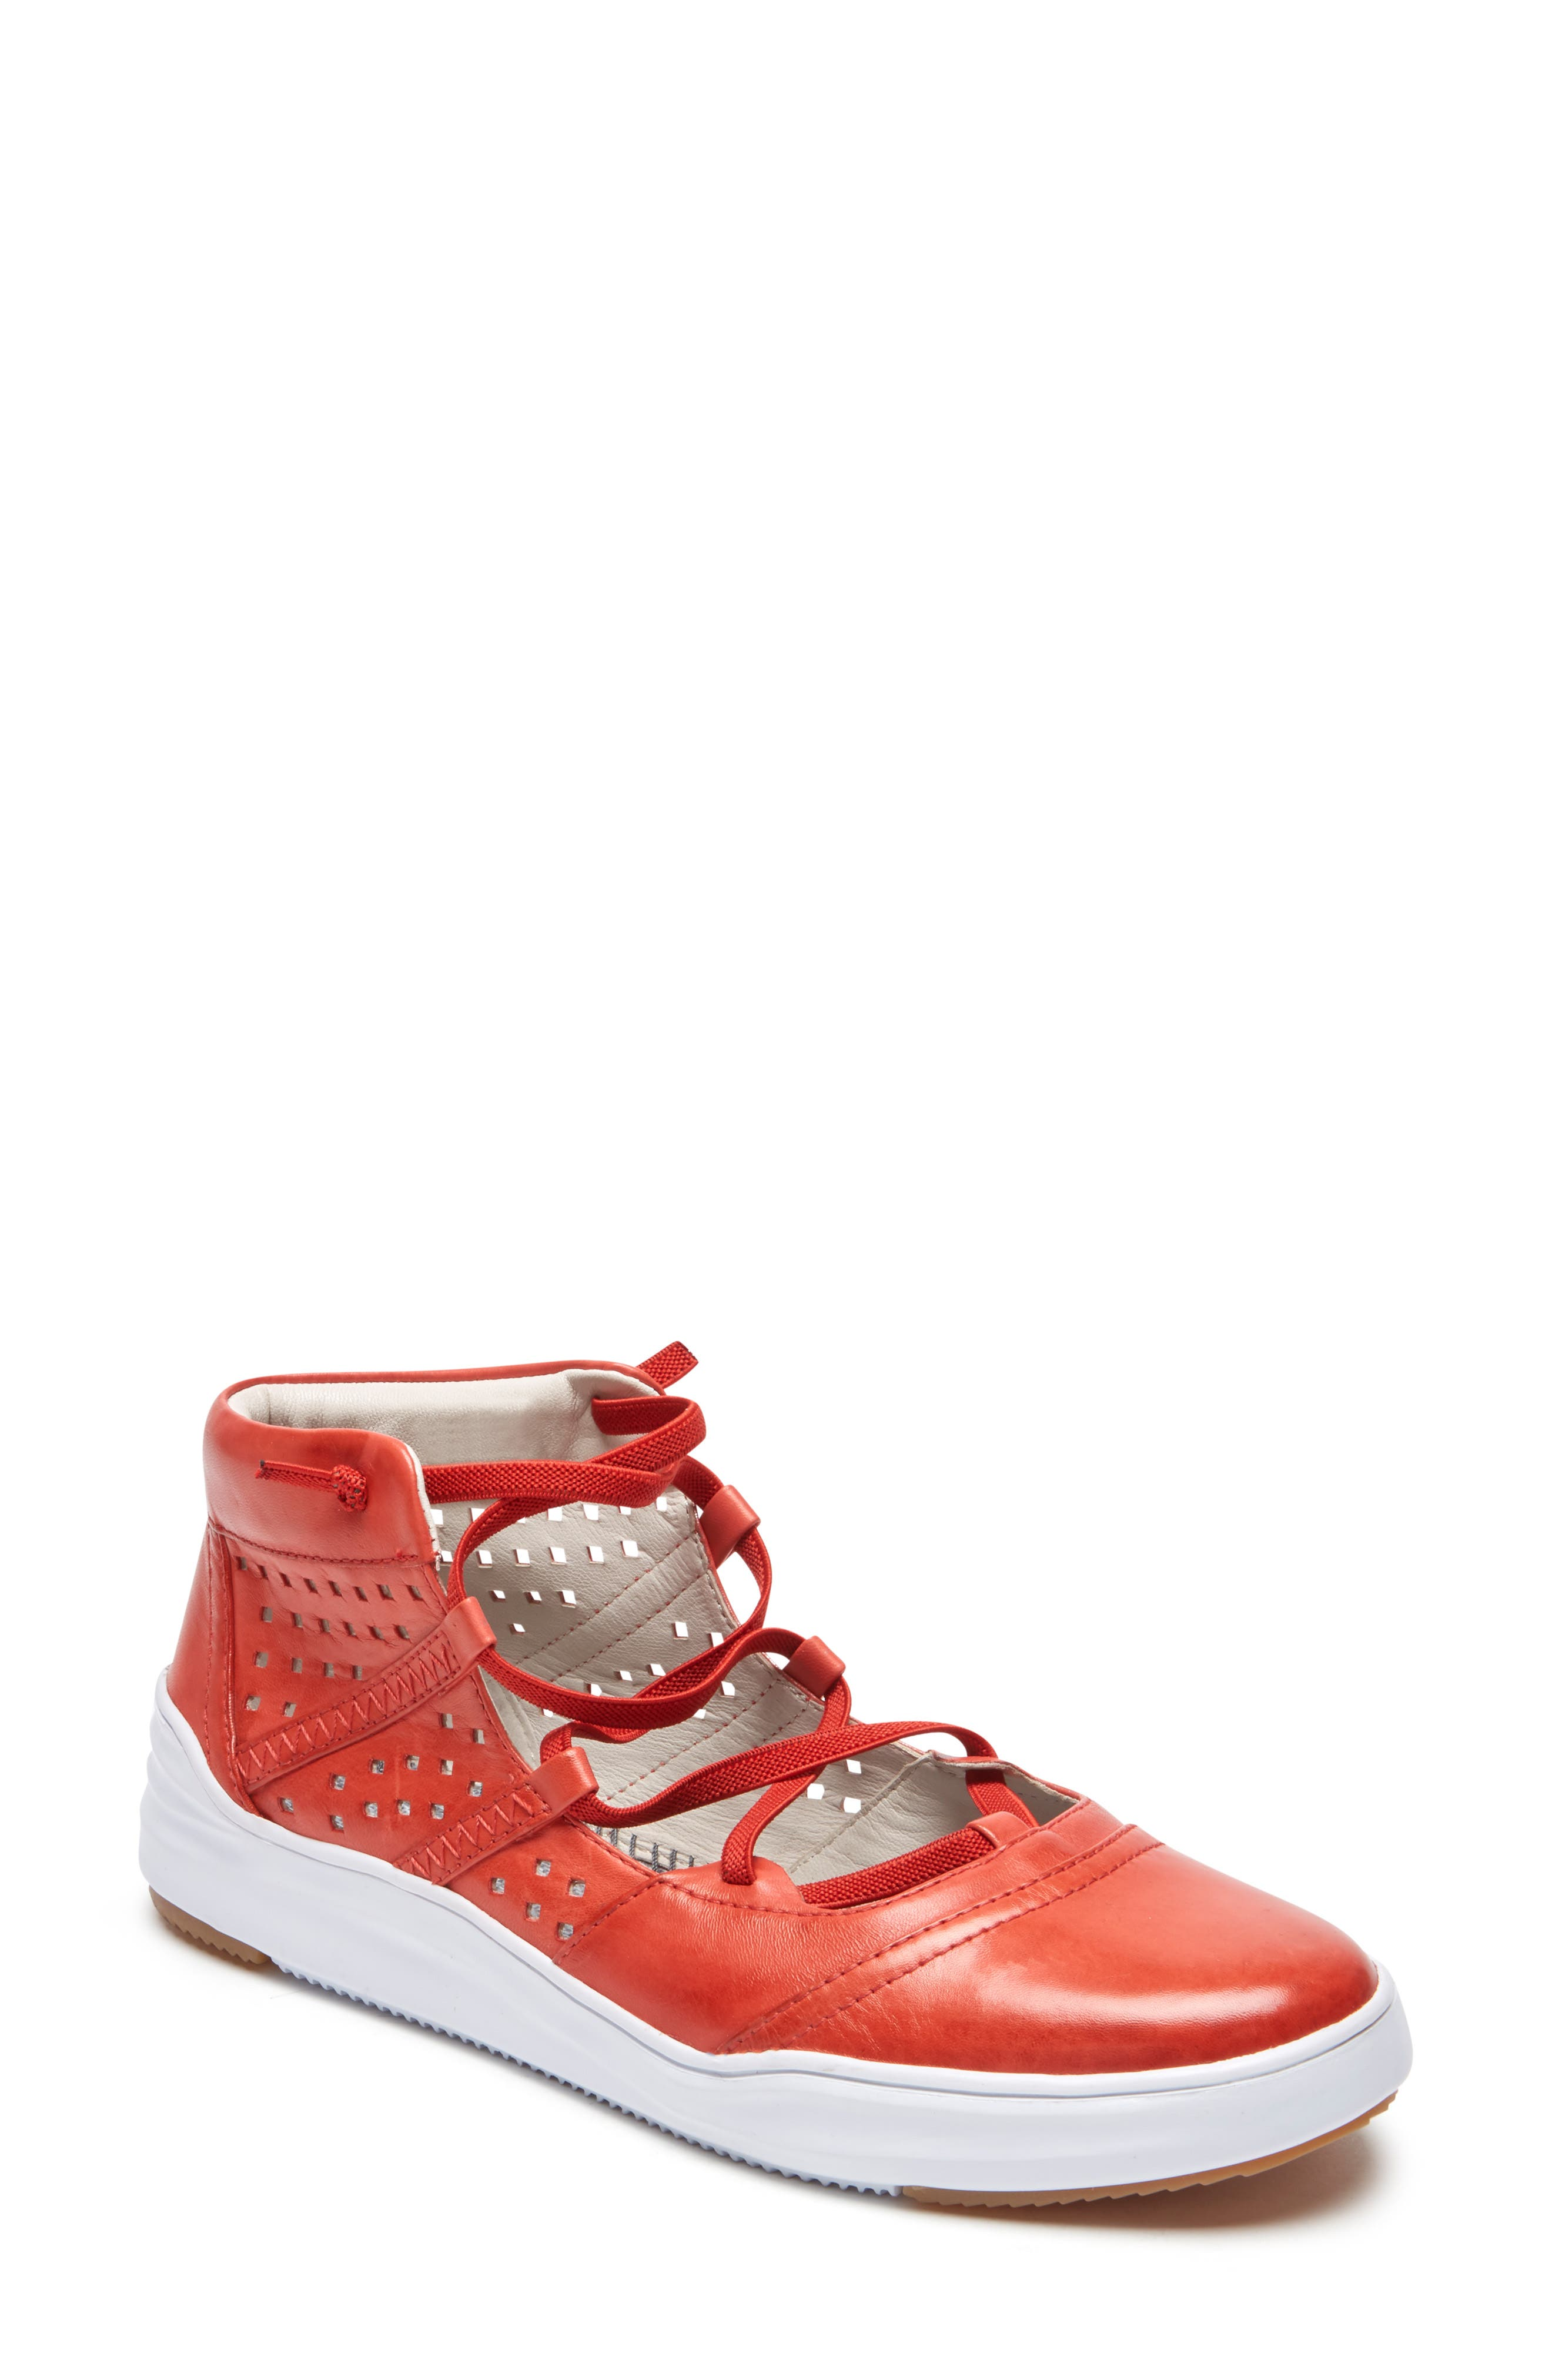 Rockport Cobb Hill Cady Gladiator Sneaker, Red